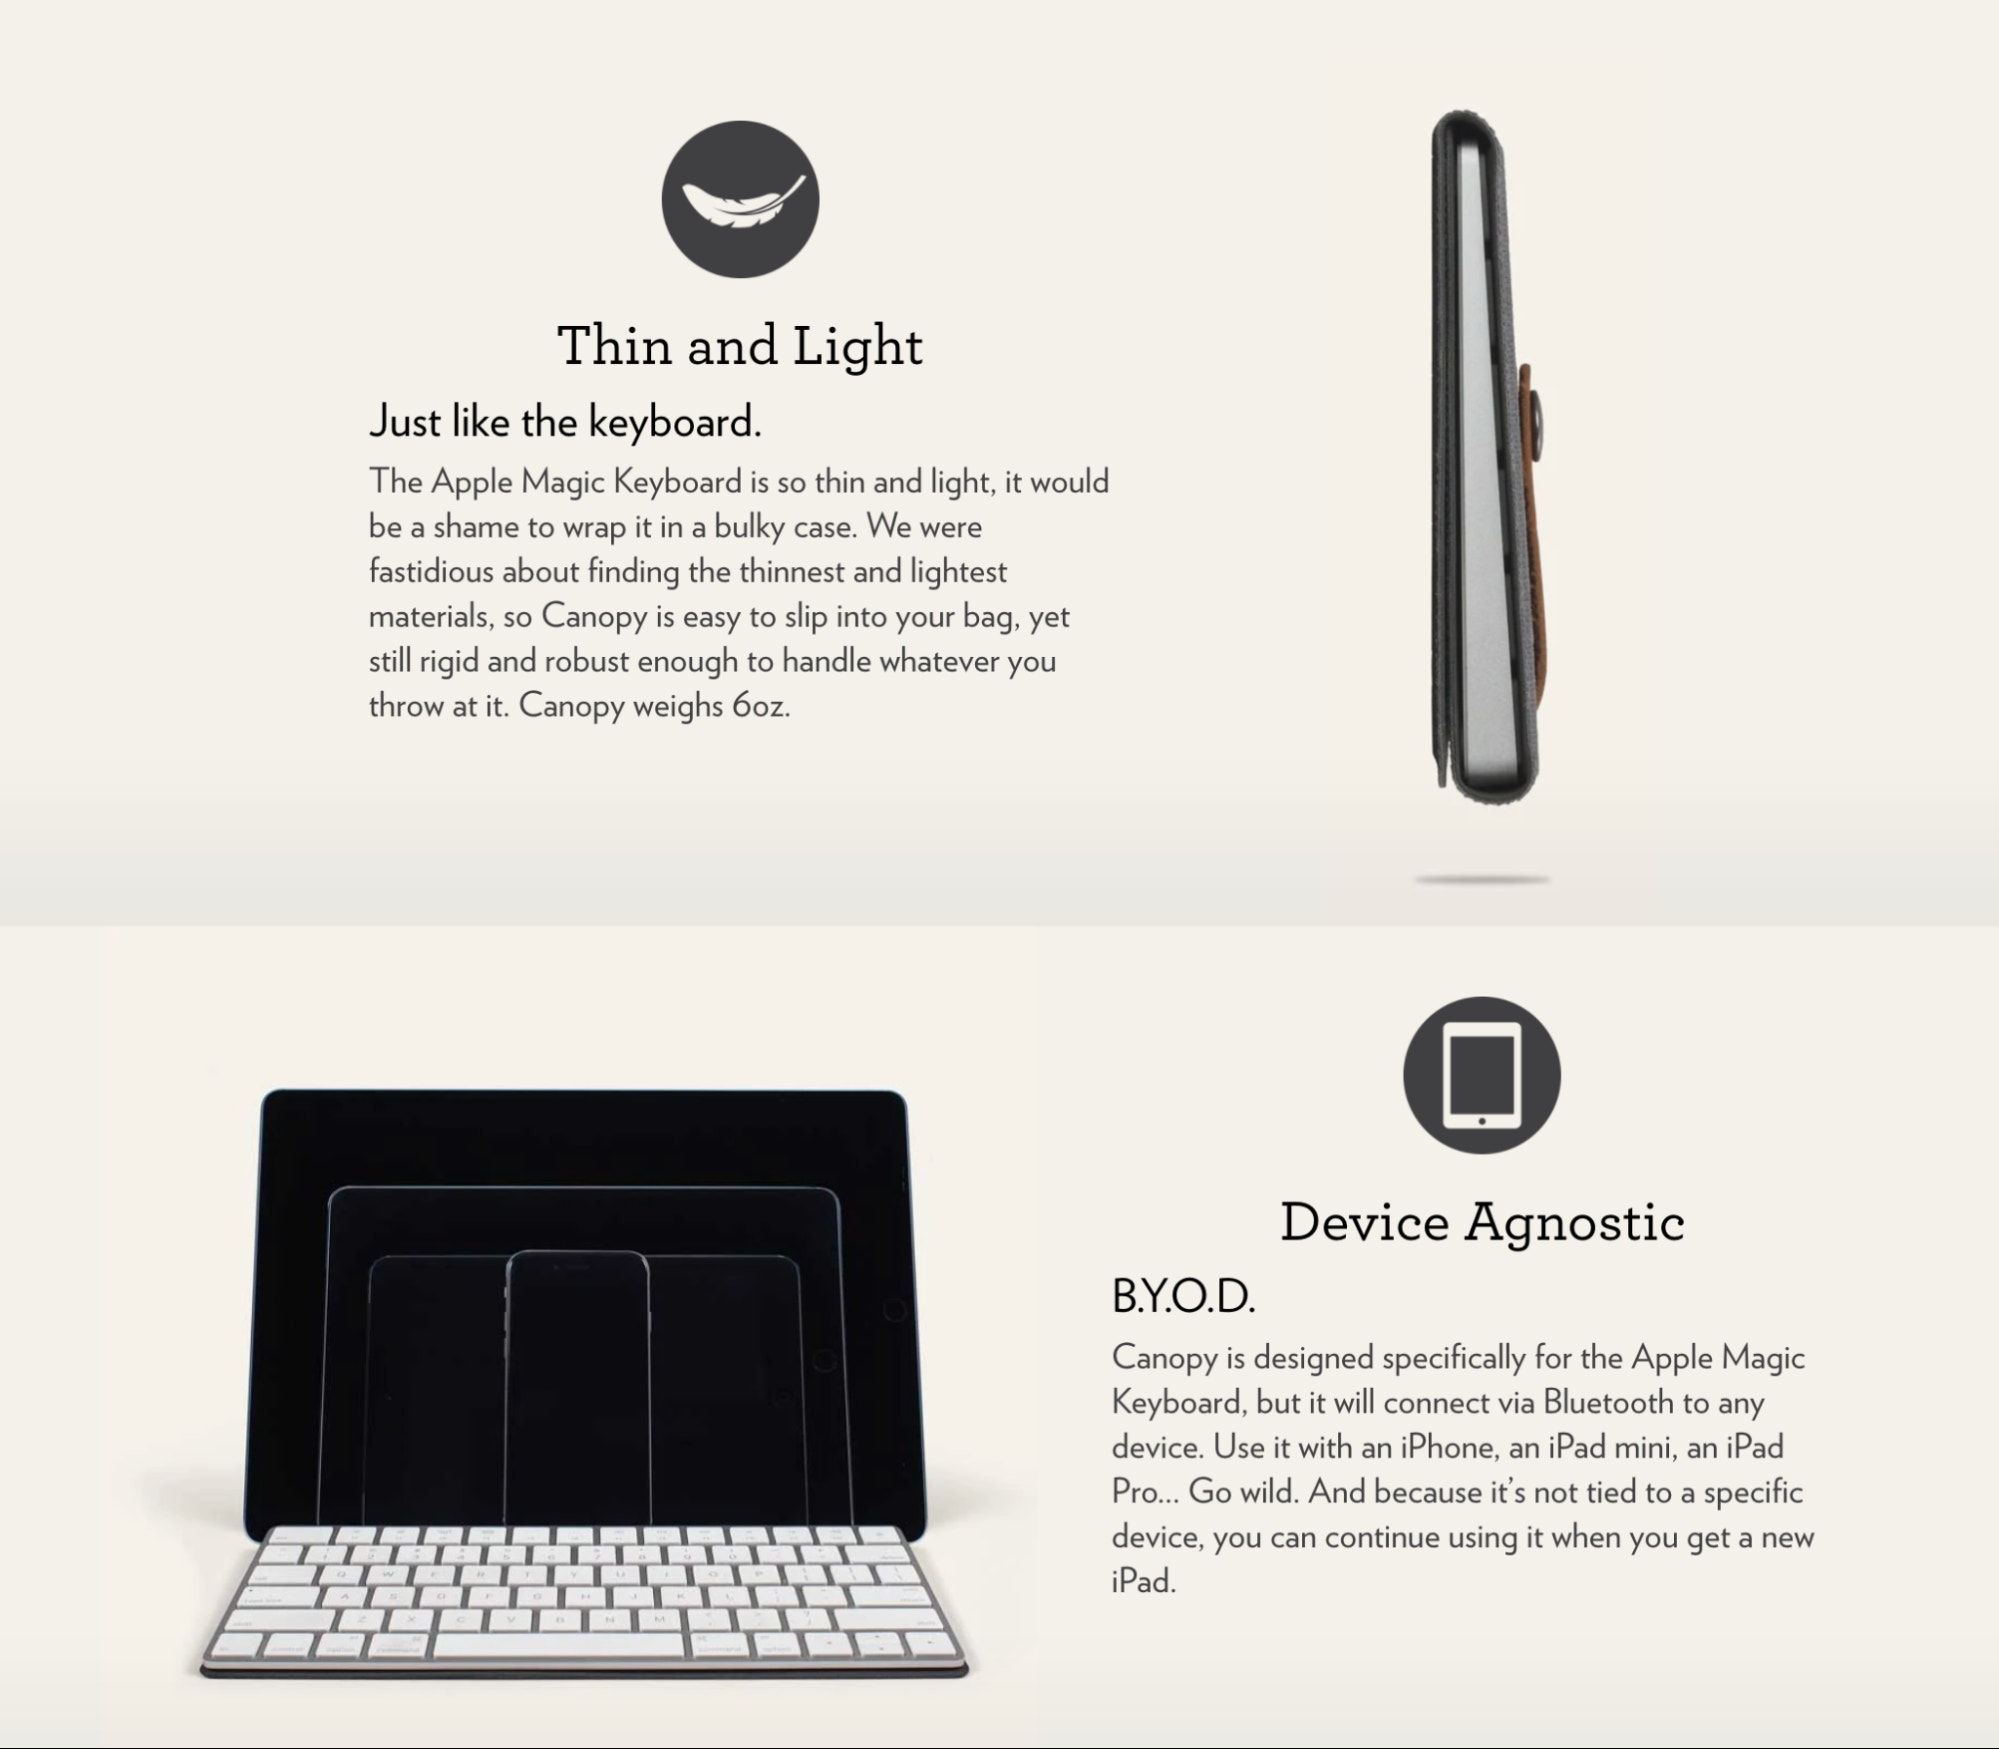 Studio Neat's product page is an excellent blend of benefits-driven copywriting along with feature-rich descriptions.